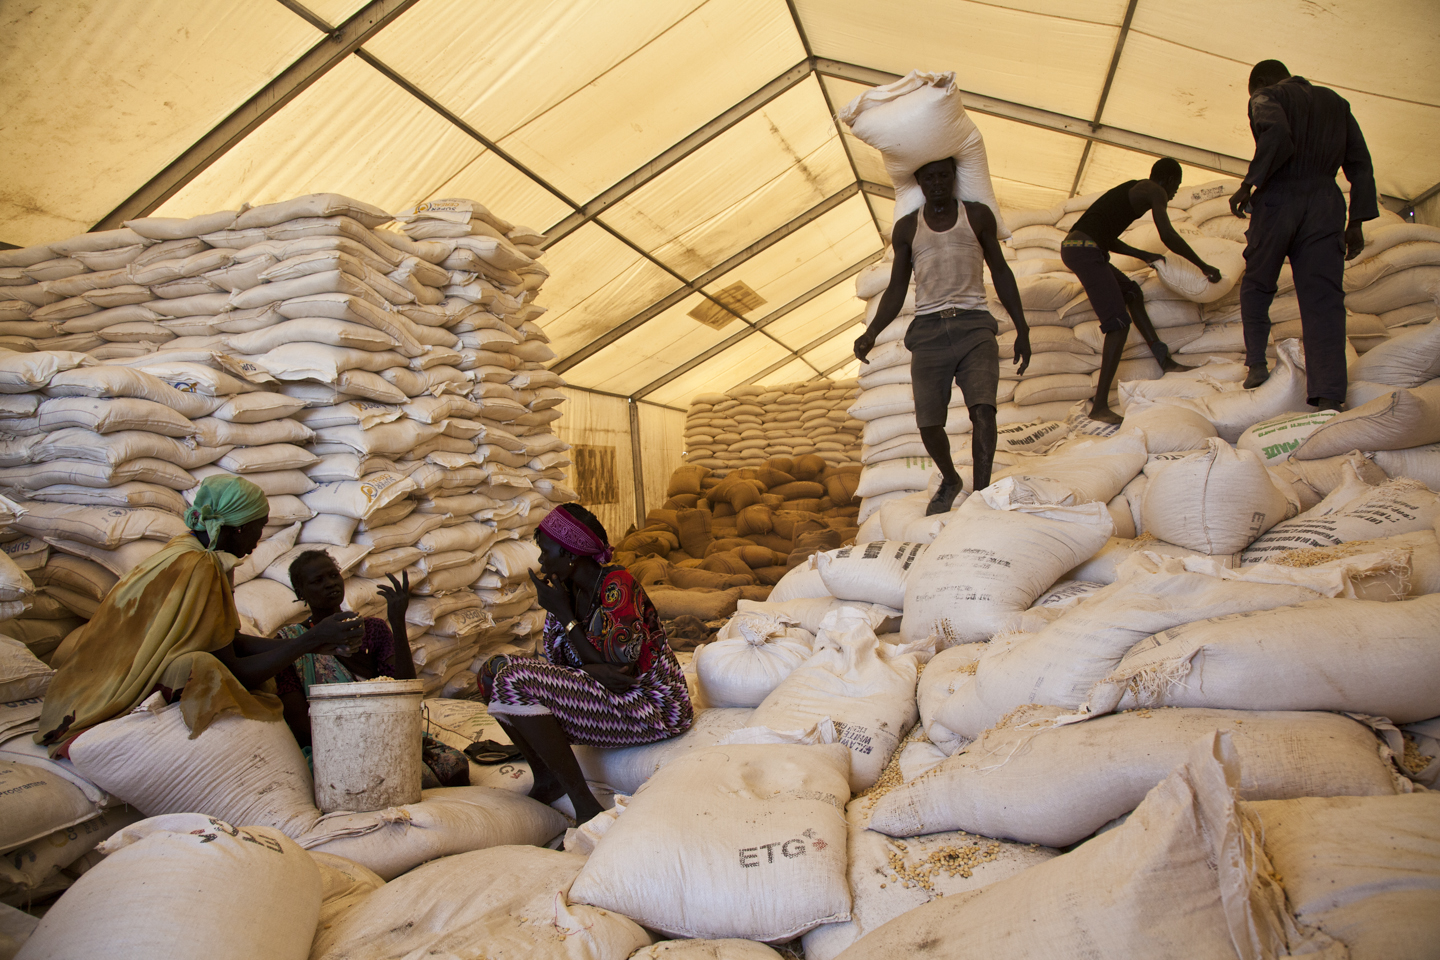 Men carry bags of food while women wait for their rations at the WFP food distribution site in Pibor, South Sudan, June 25th, 2012.